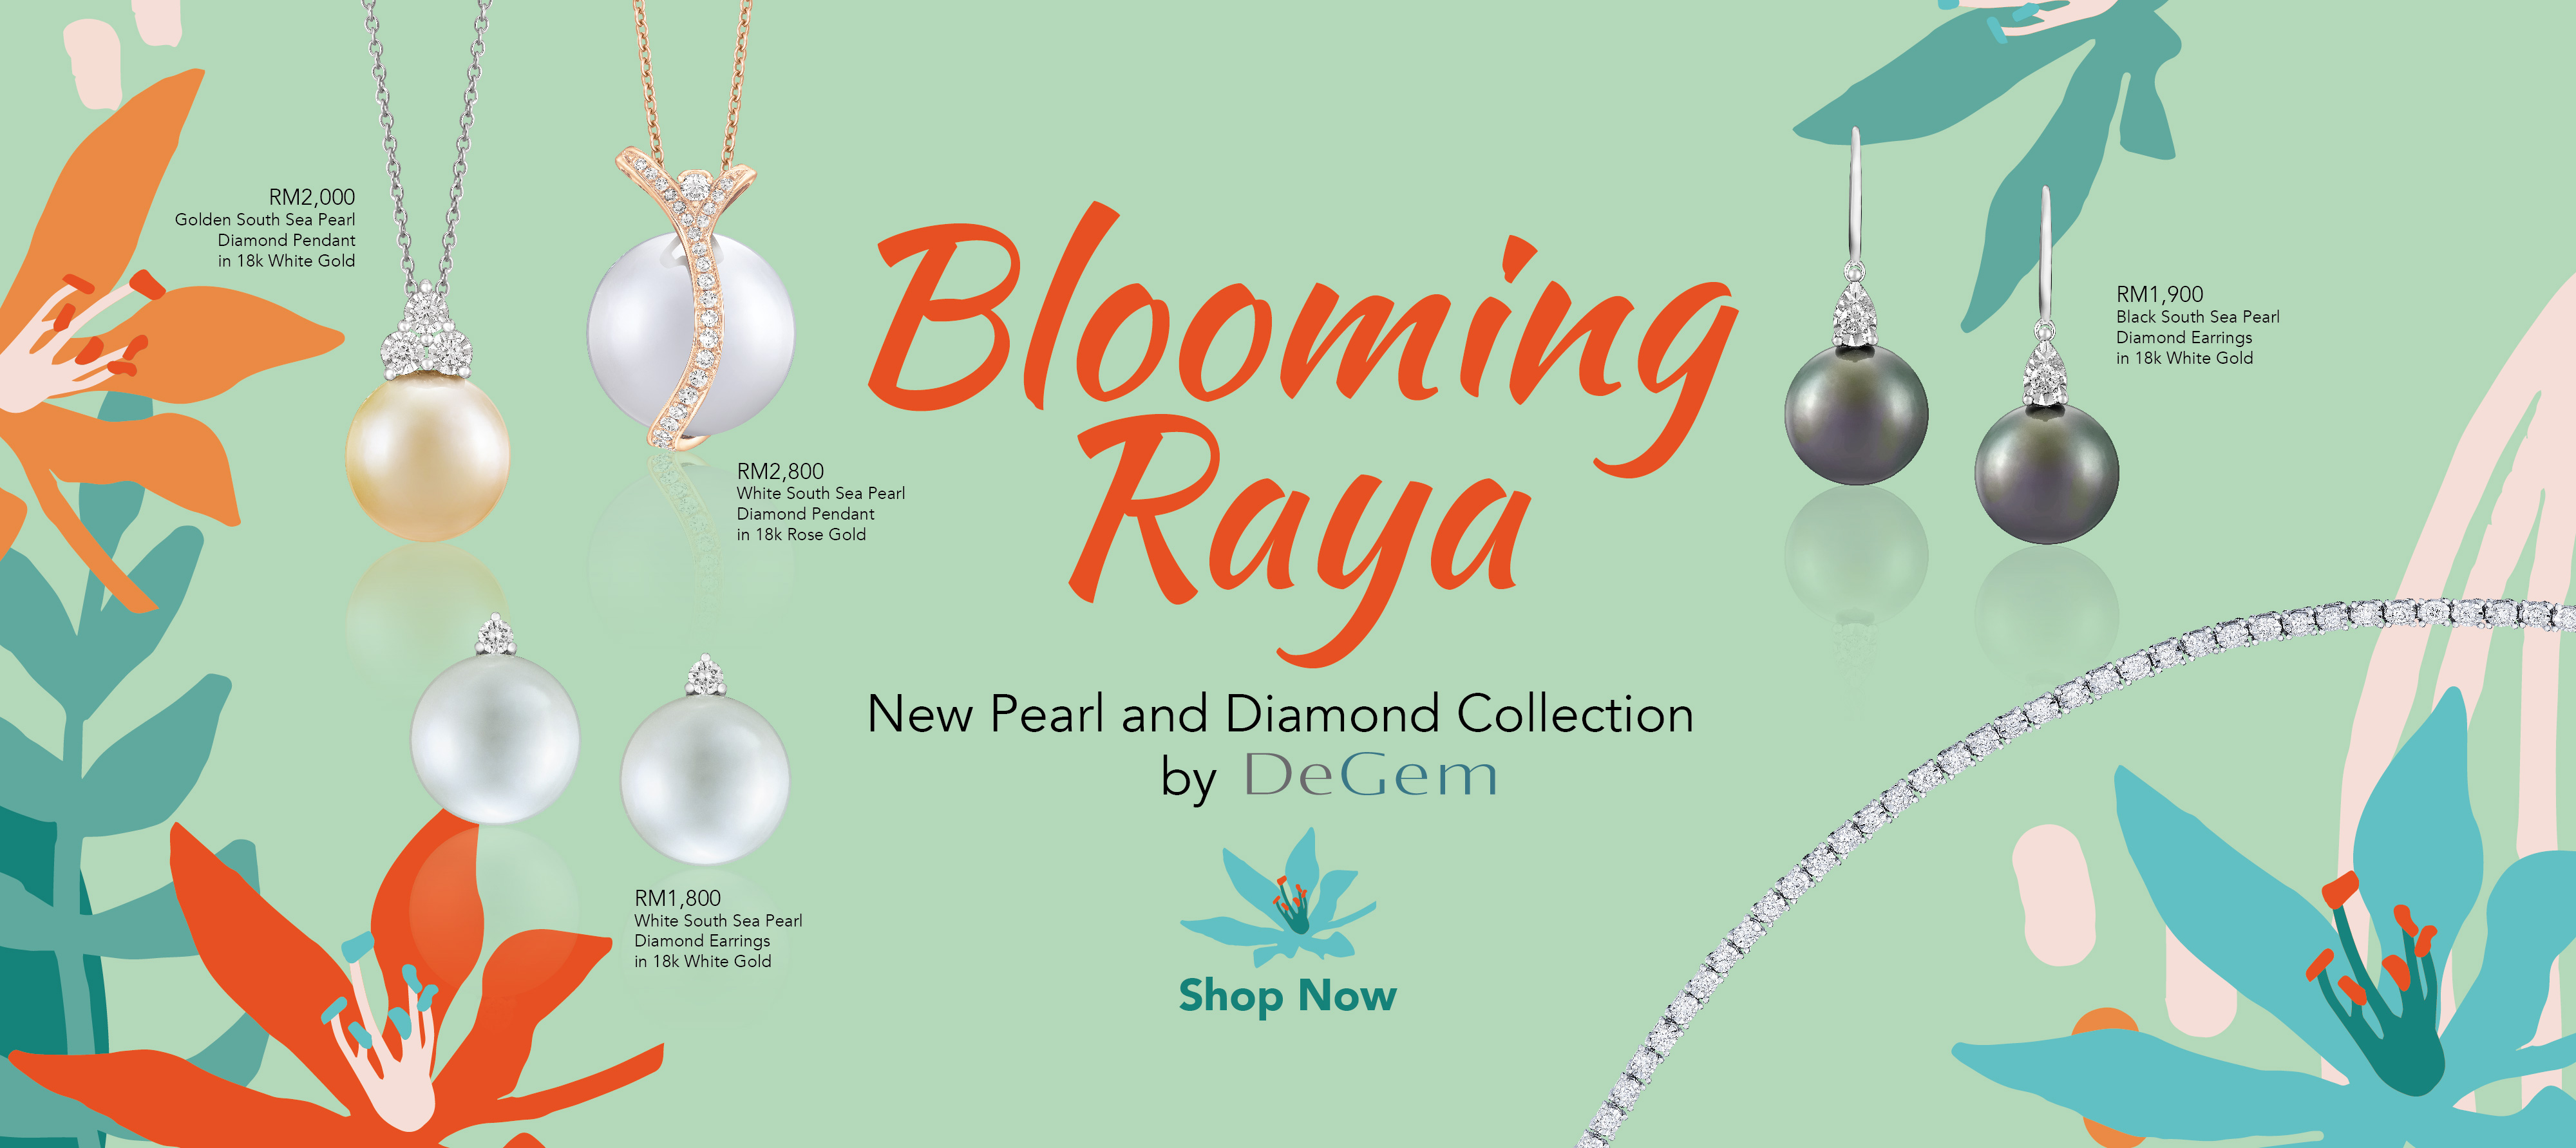 raya-slider-website